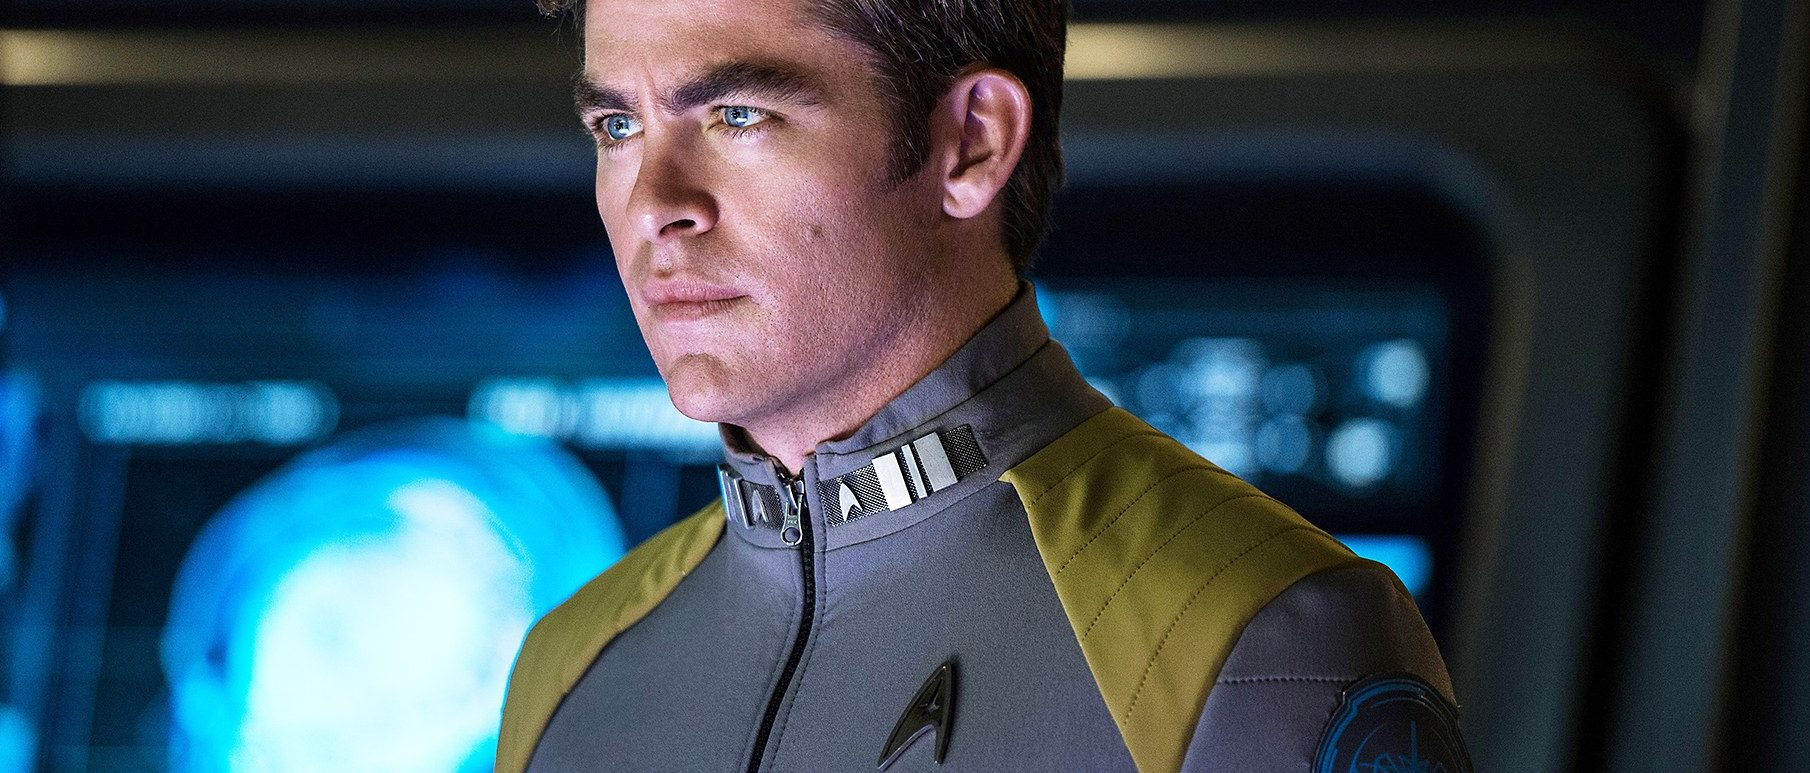 Chris Pine will return as Captain Kirk in Star Trek 4 movies